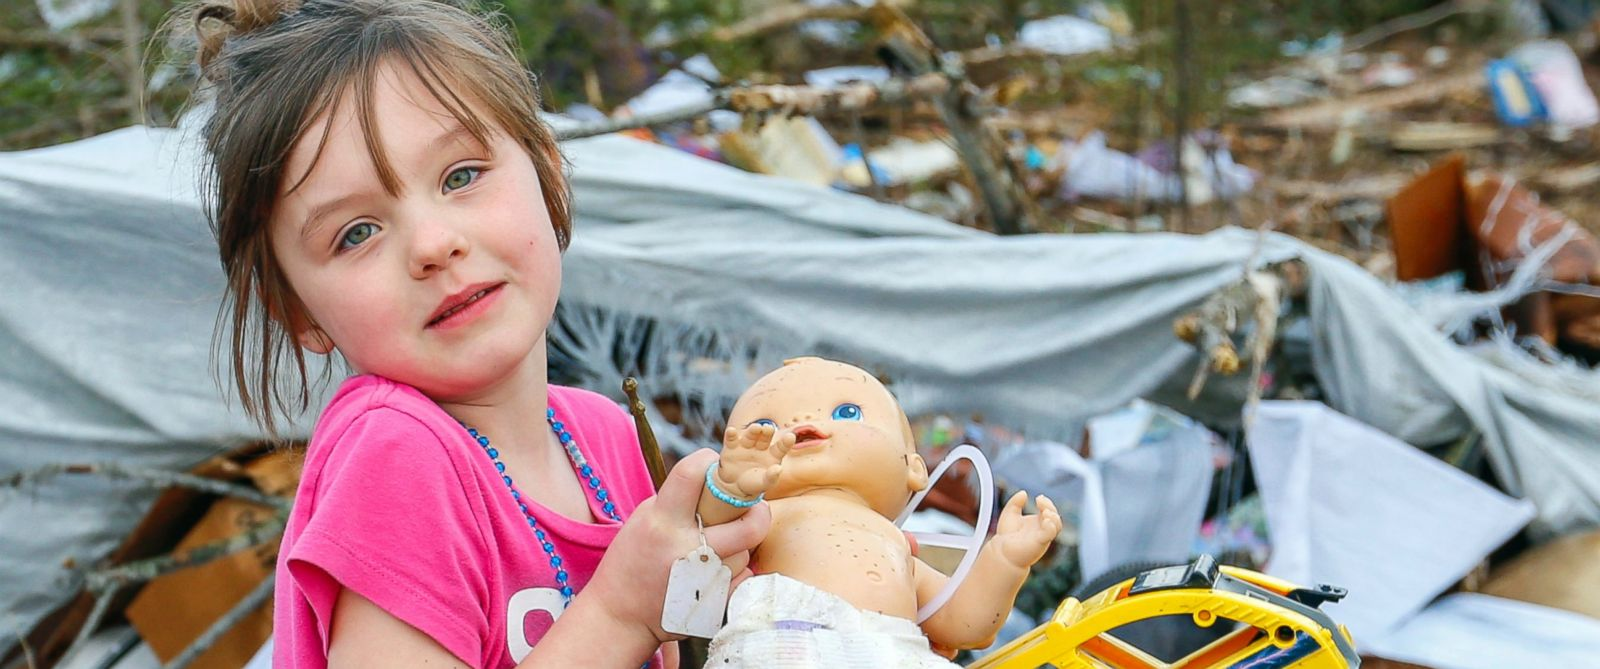 PHOTO: Serenity Brooks, 5, holds a baby doll as she digs for her belongings after a suspected tornado ripped through the town of Rosalie, Ala., Wednesday, Nov. 30, 2016.